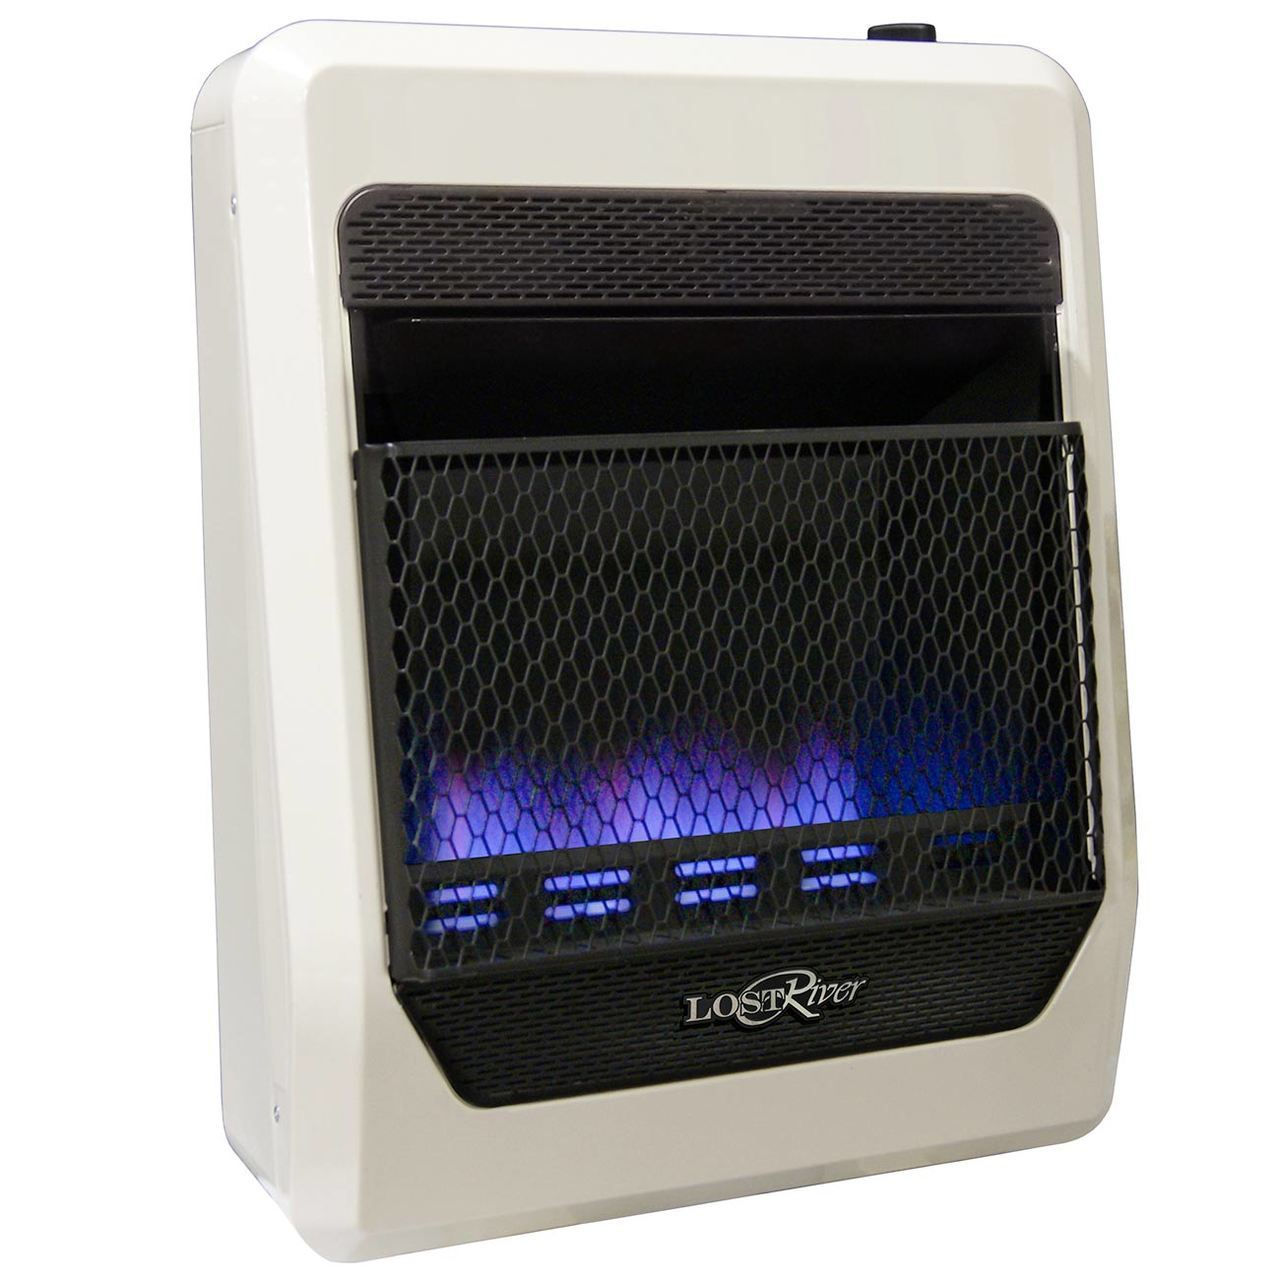 Lost River Natural Gas Ventless Blue Flame Gas Space Heater - 20,000 BTU, Model# LRT20B-NG